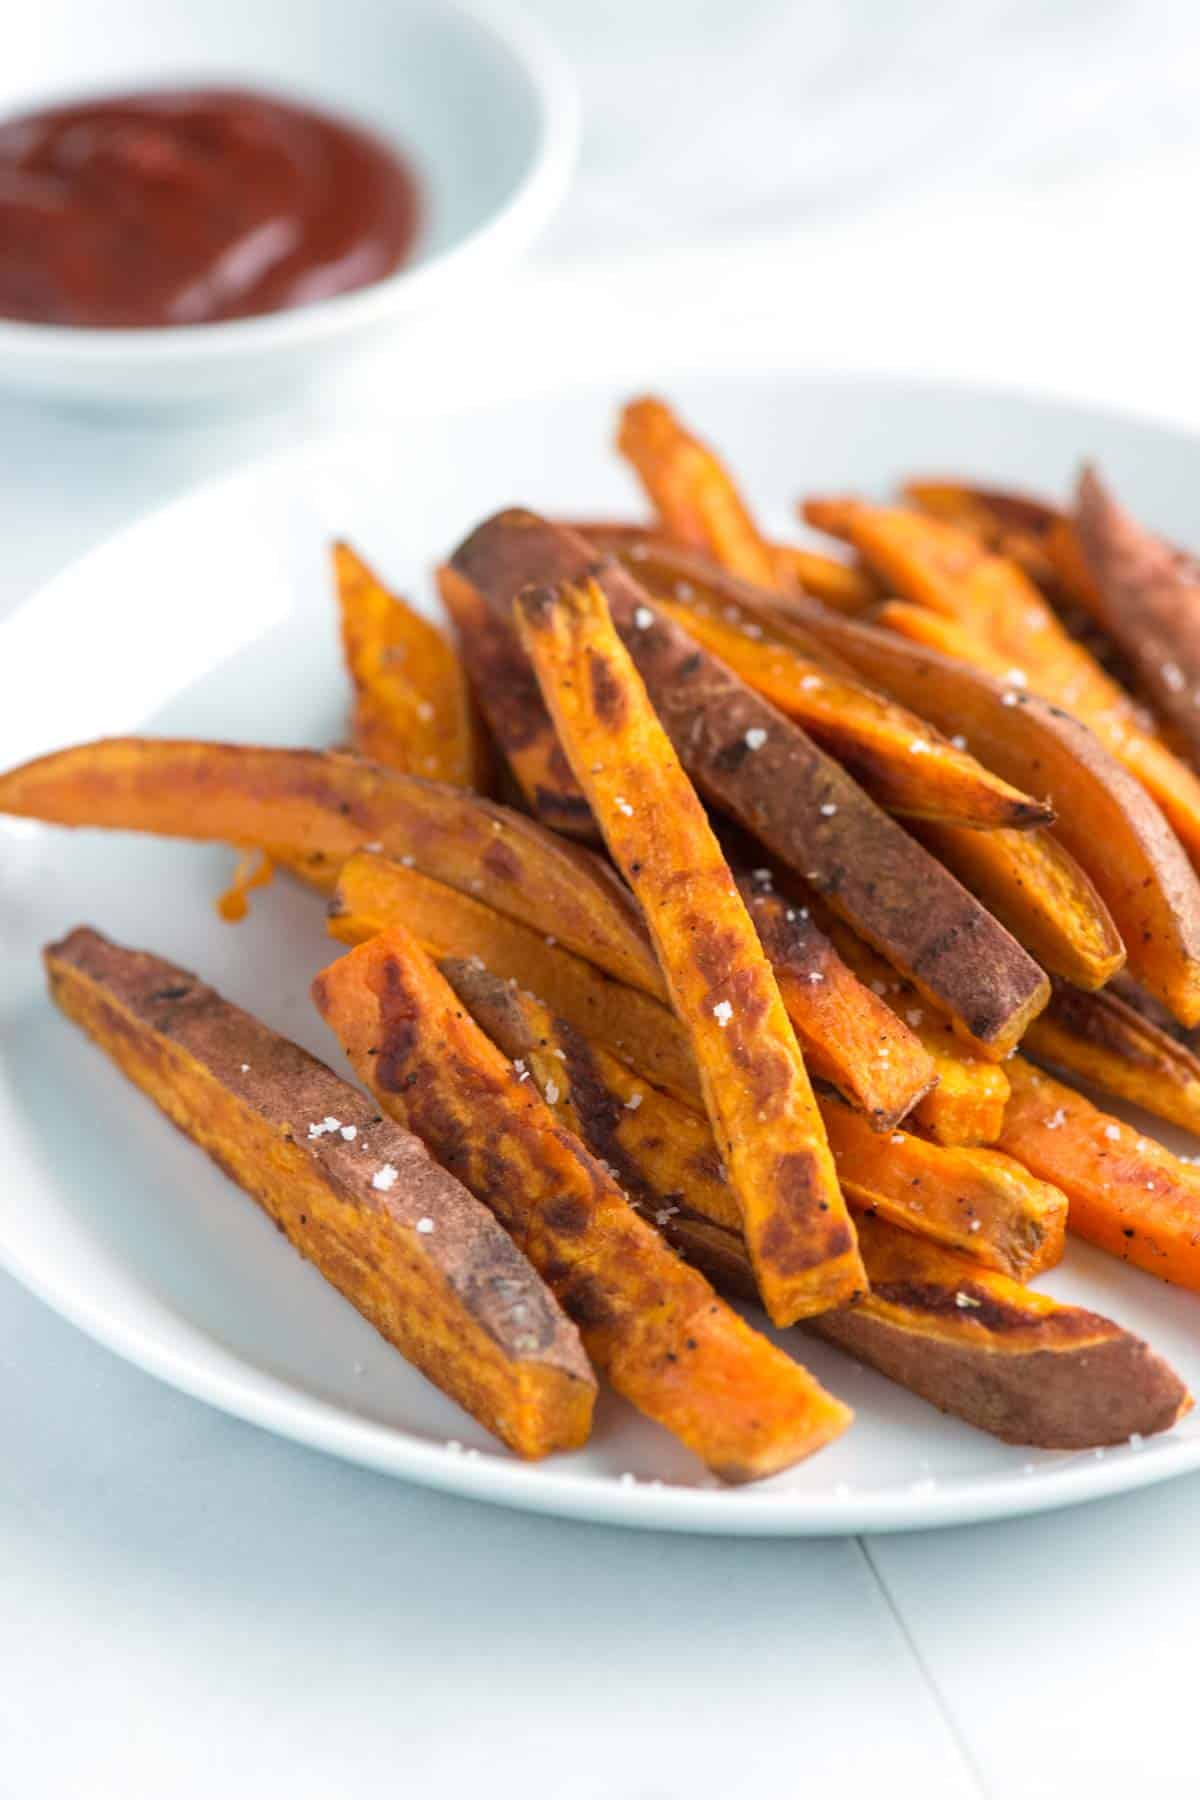 How to make crispy baked sweet potato fries that are caramelized and on the outside and tender on the inside. No fryer needed here. Consider making a double batch, these are addictive.